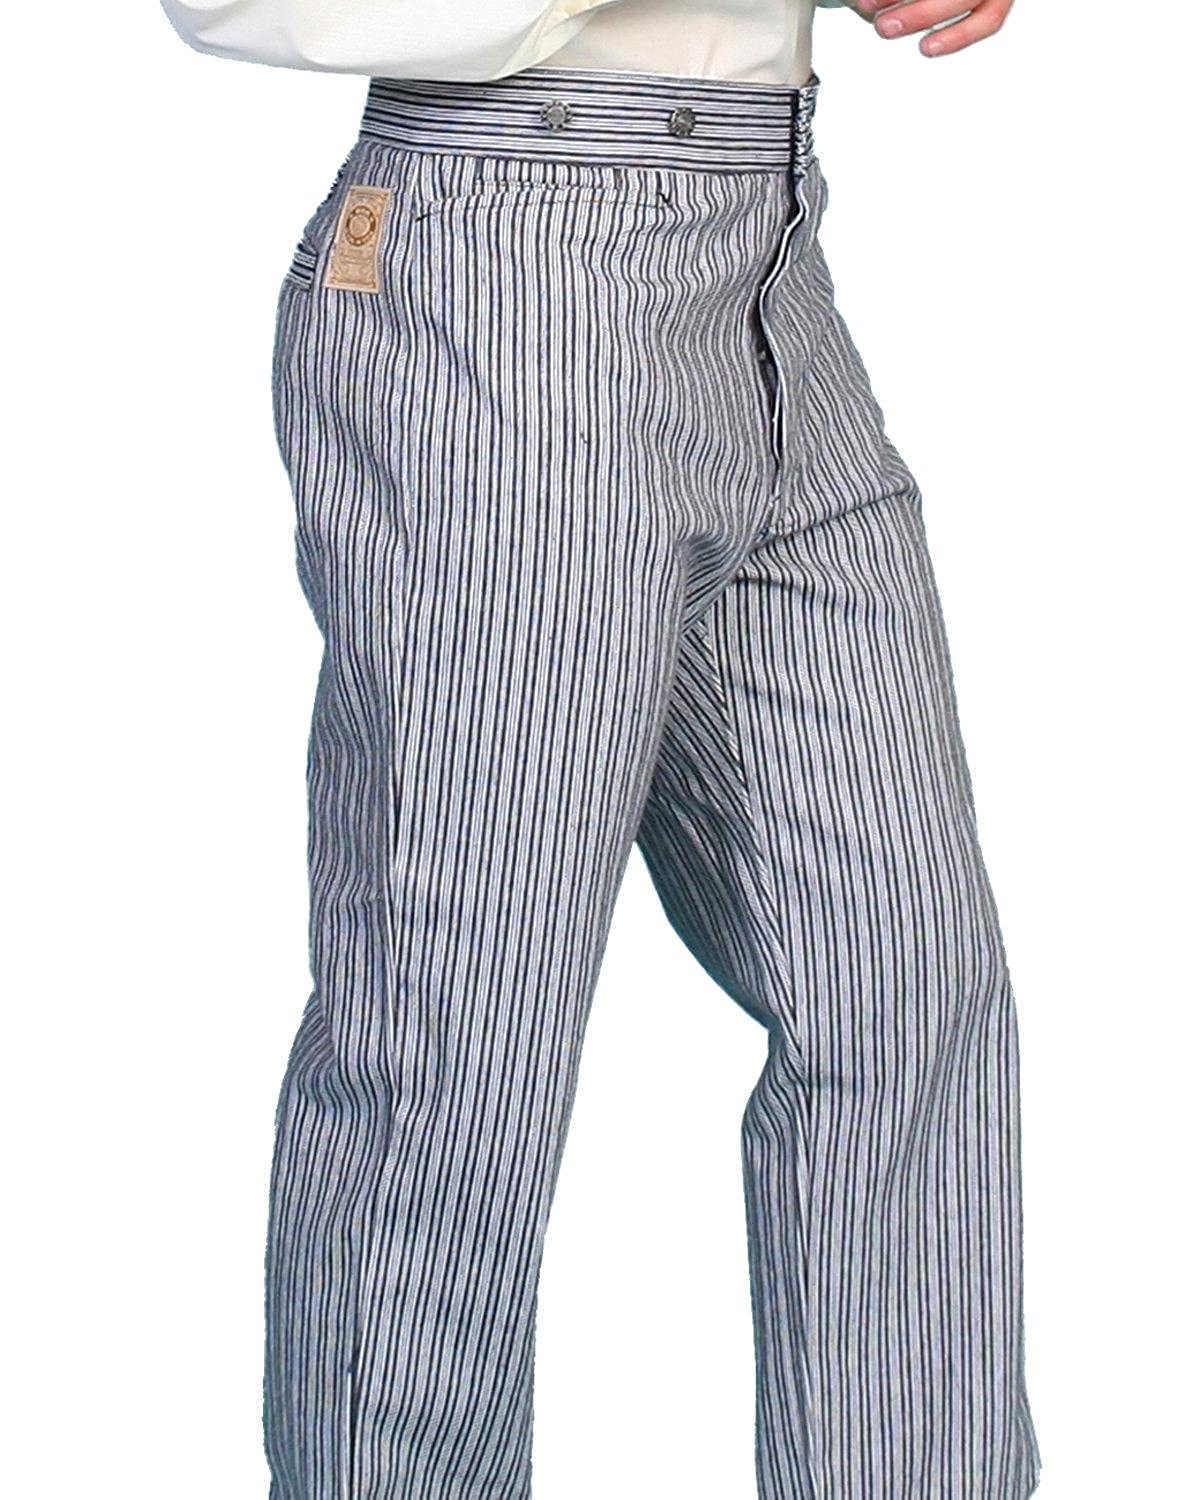 Edwardian Men's Fashion & Clothing Scully Wahmaker Mens Wahmaker Railhead Stripe Pants $99.99 AT vintagedancer.com